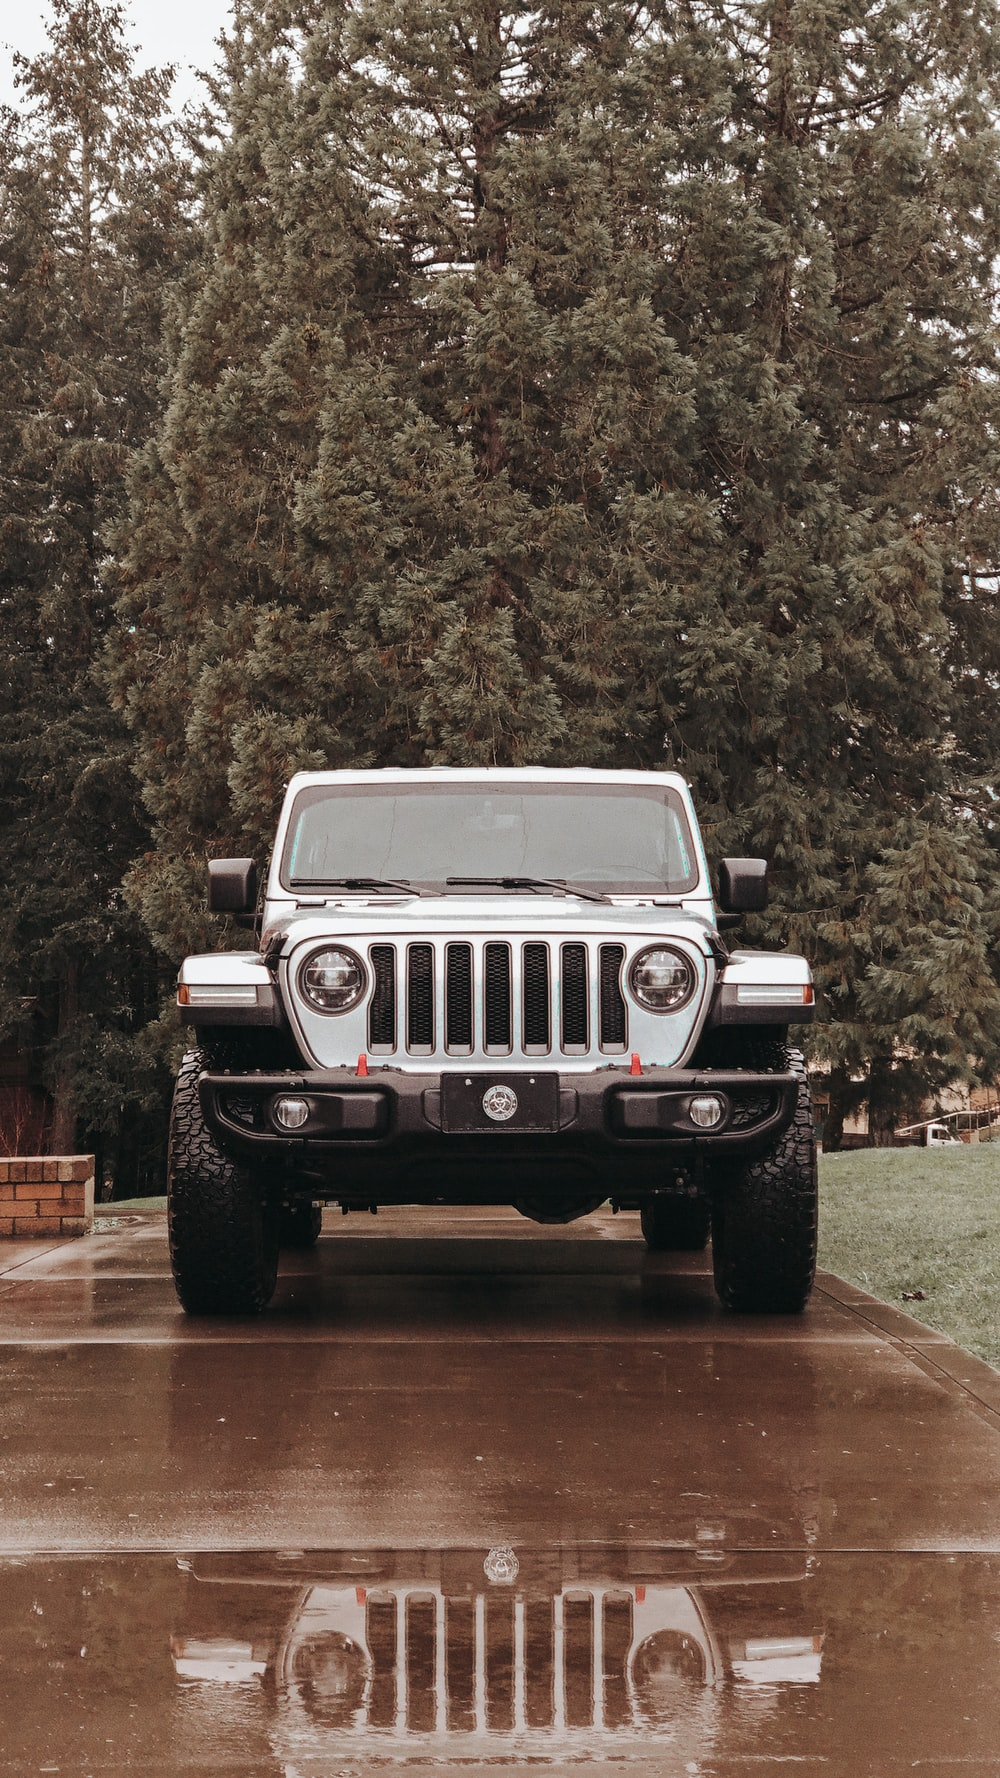 white jeep wrangler parked near green trees during daytime